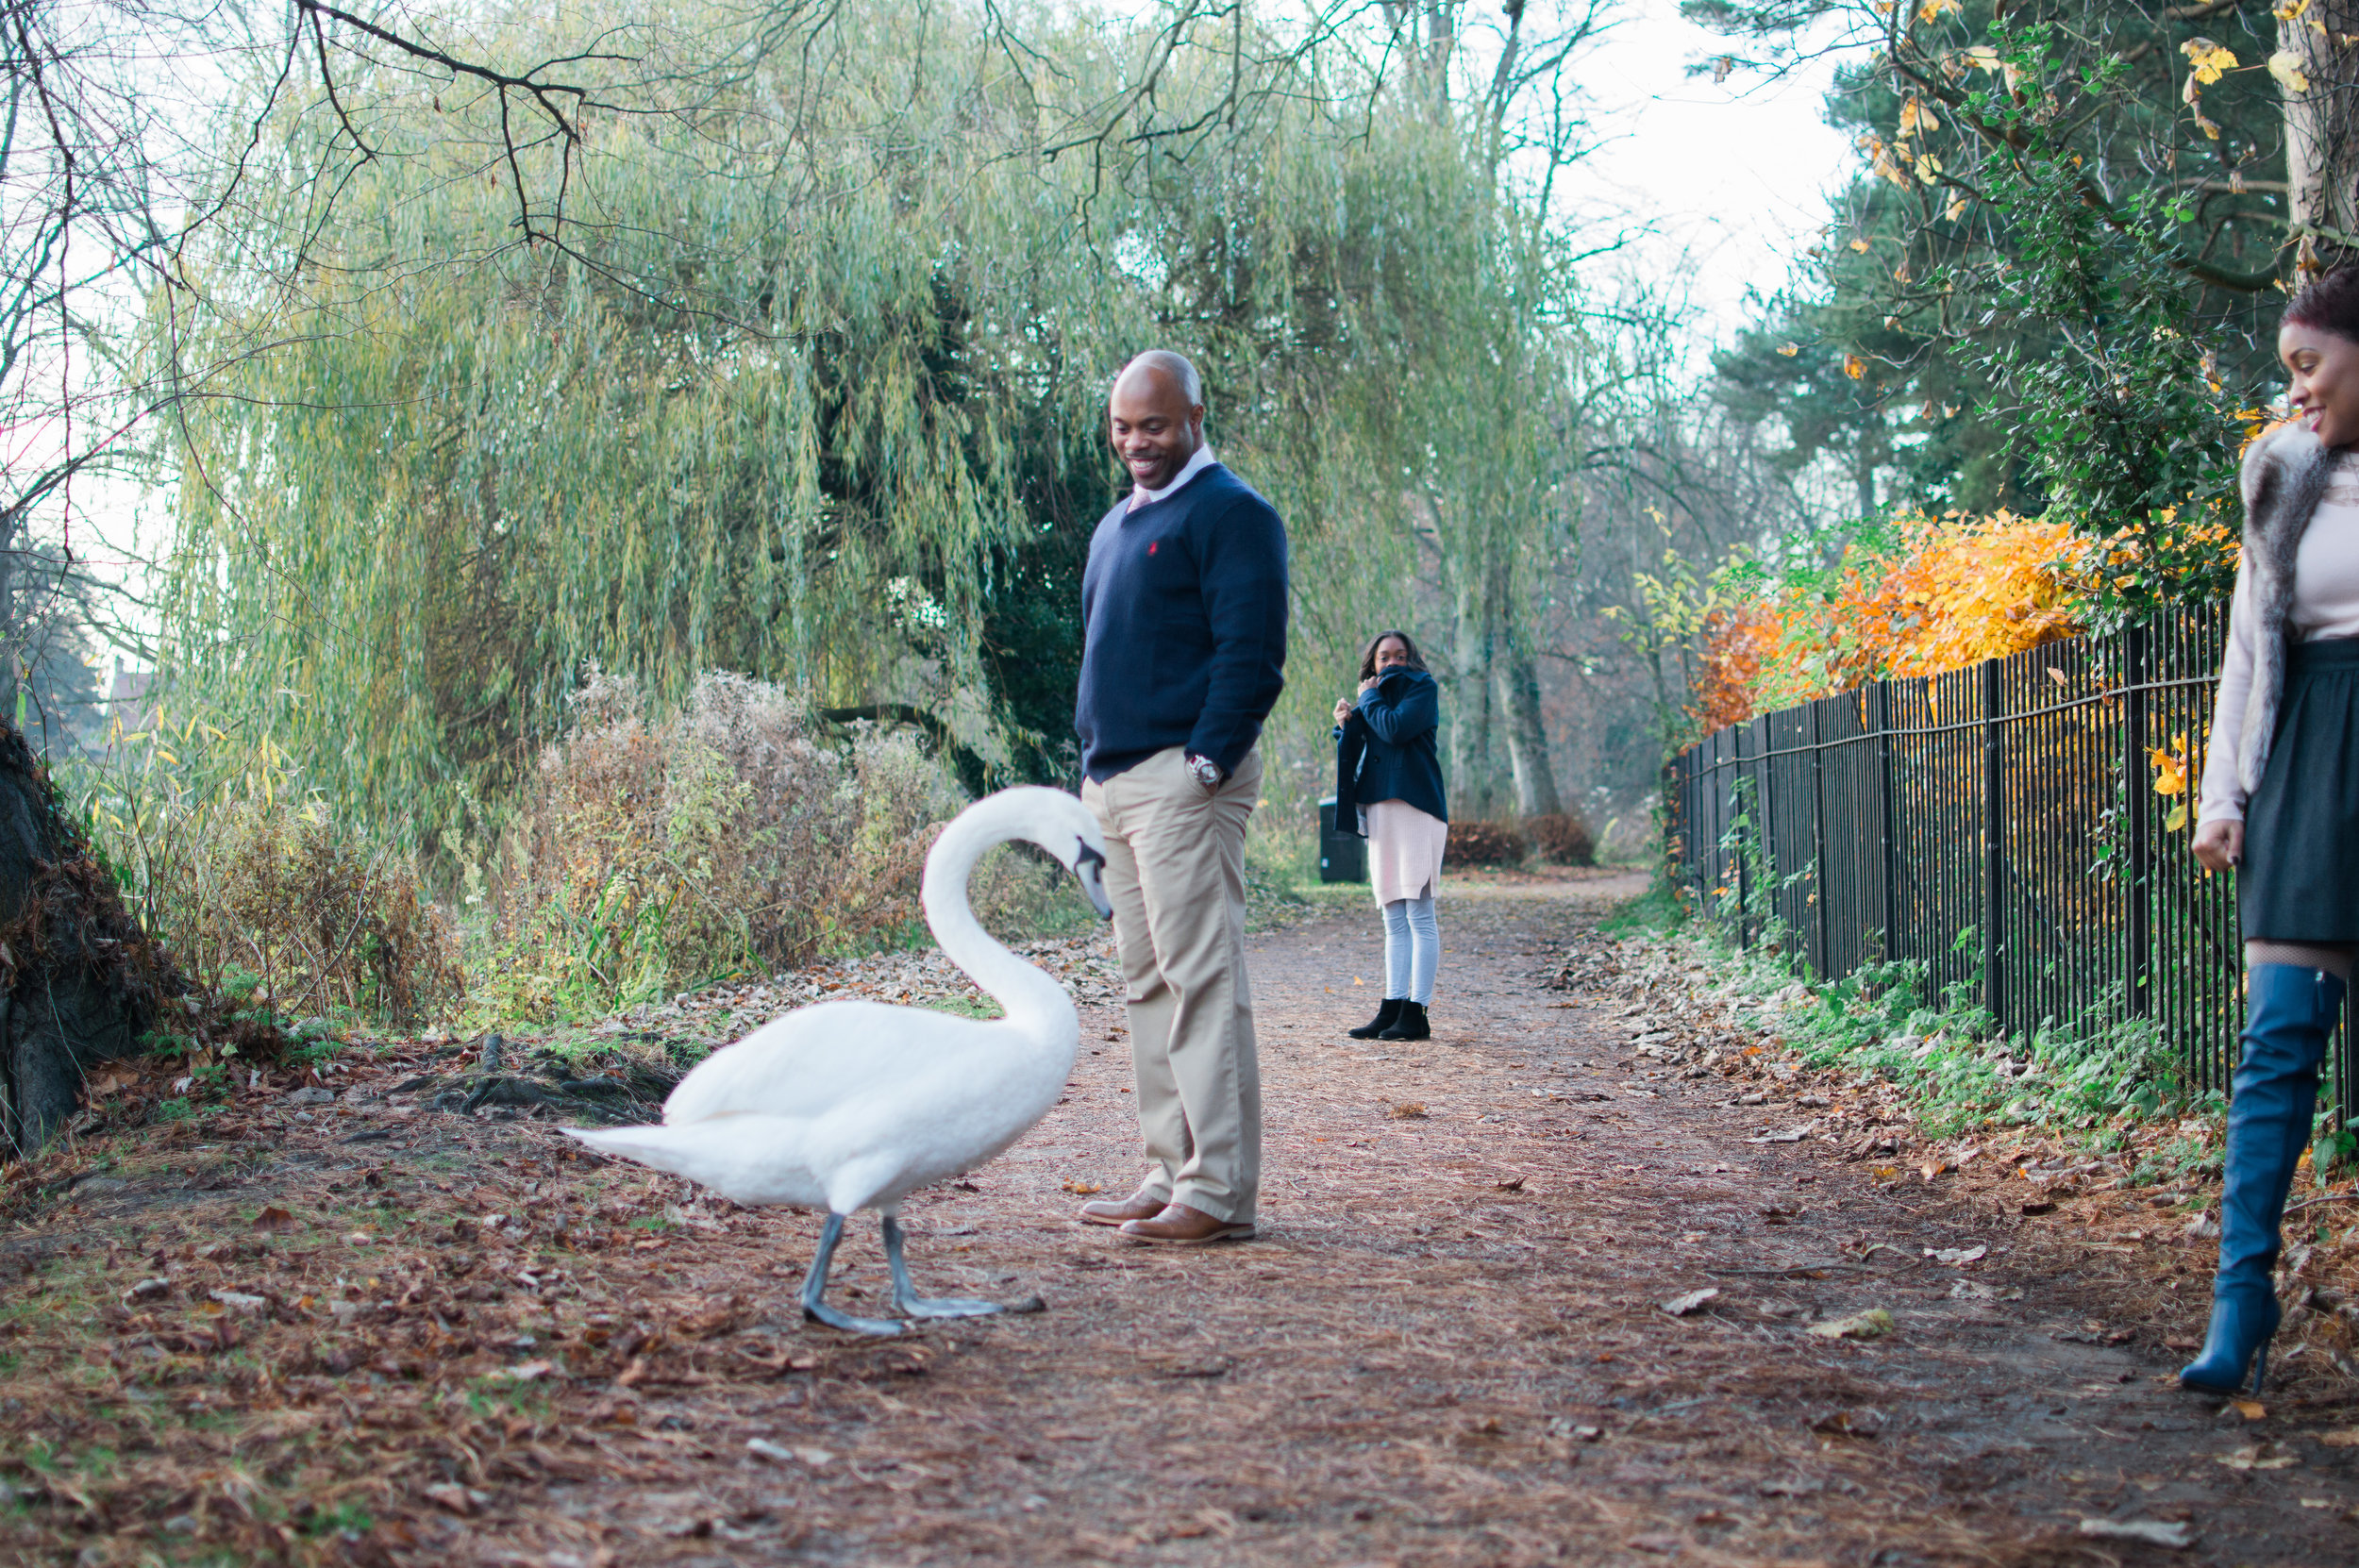 I mean this swan was HUUUGE.